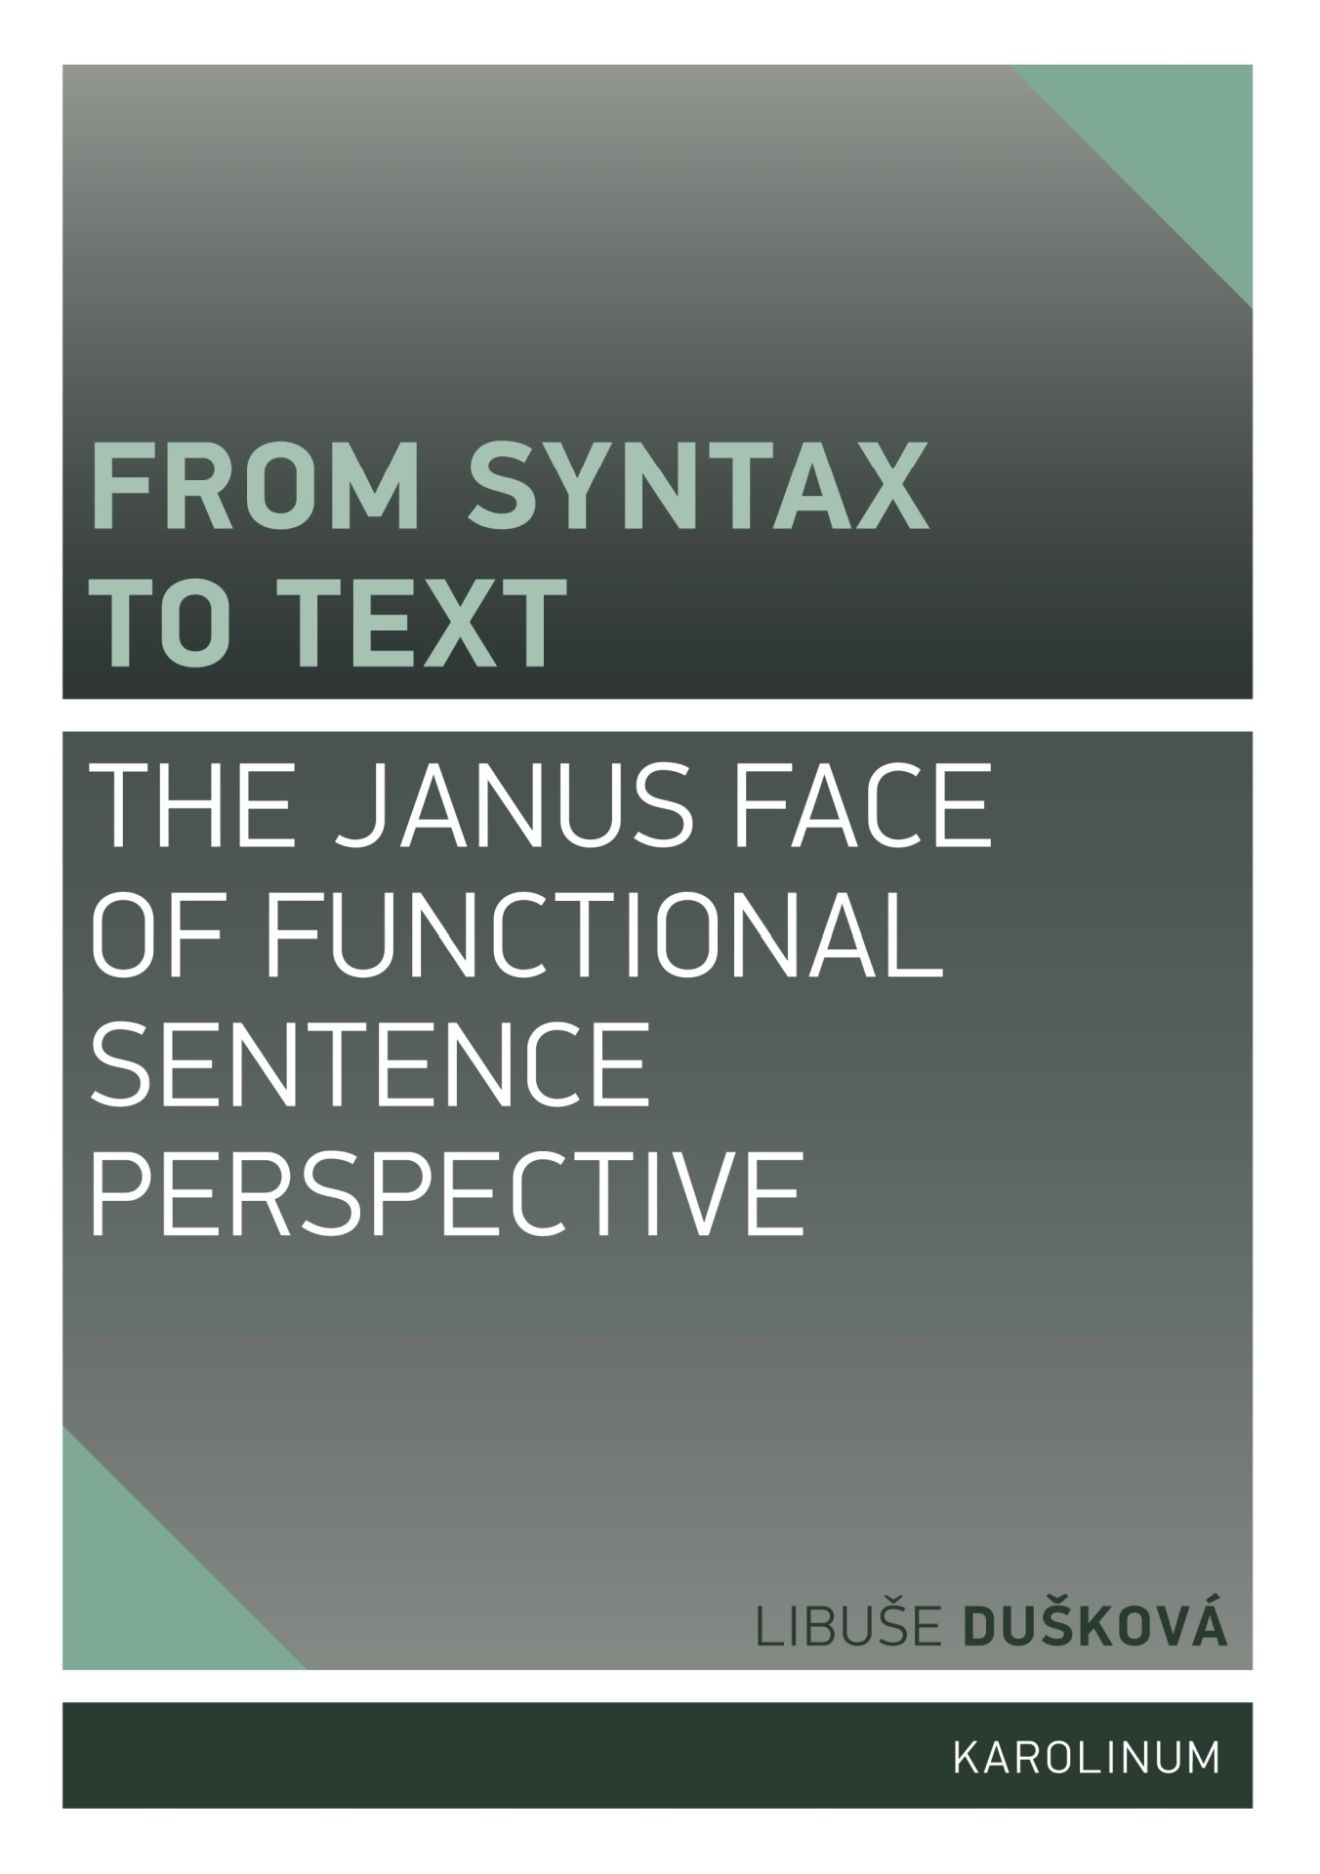 From Syntax to Text